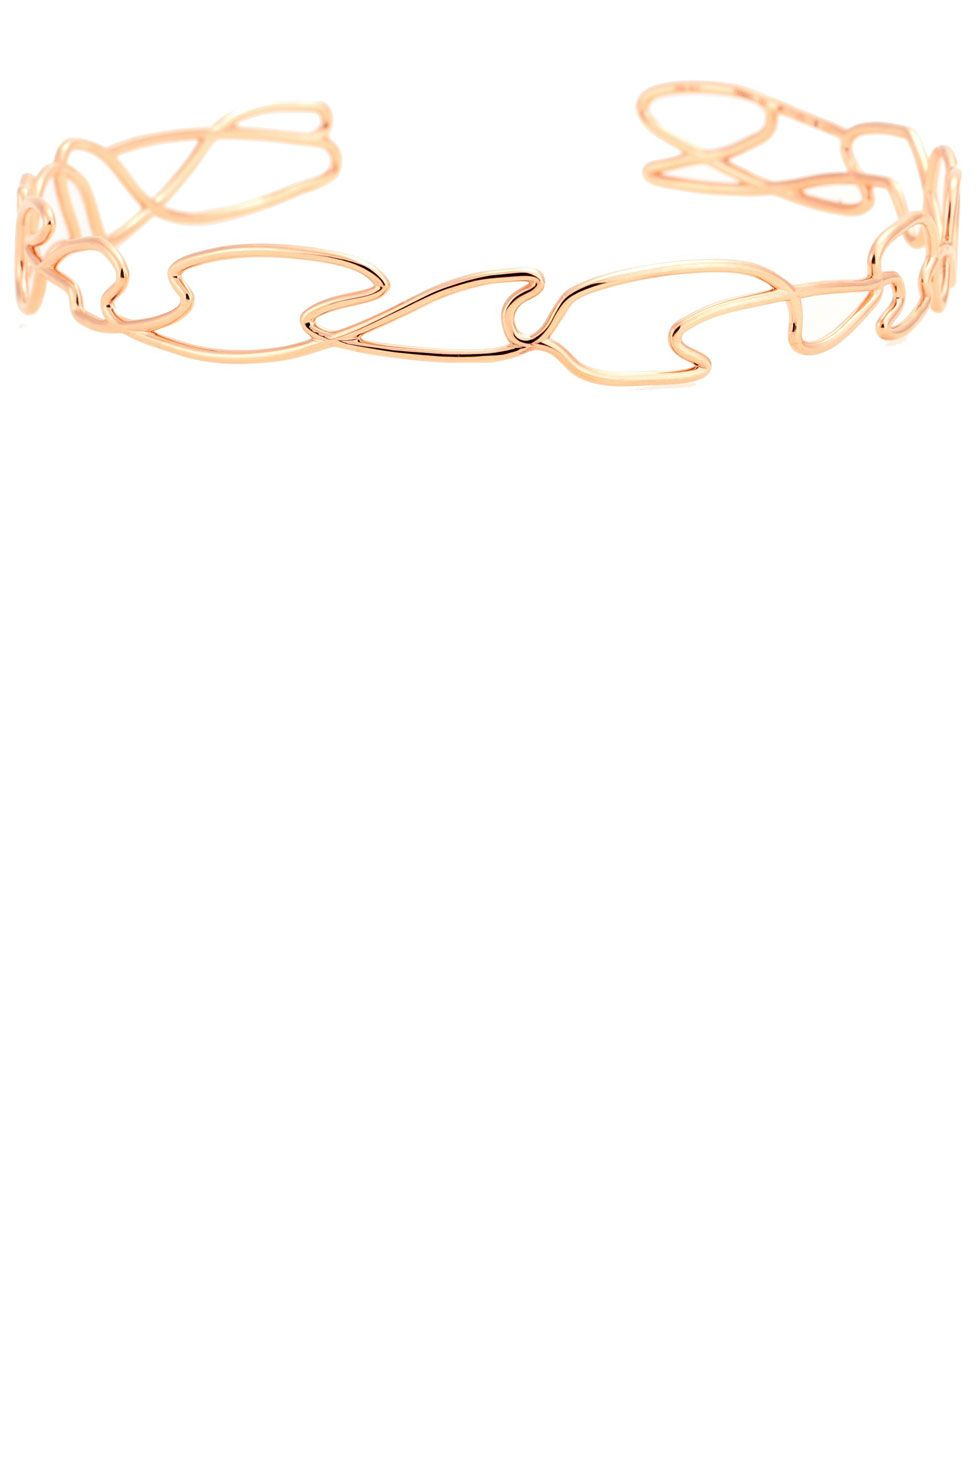 "<p><em>White Noise 18k rose gold choker&#x3B; $8812, </em><a href=""http://www.mytheresa.com/en-de/white-noise-18kt-rose-gold-choker.html"" target=""_blank""><em>mytheresa.com</em></a></p>"